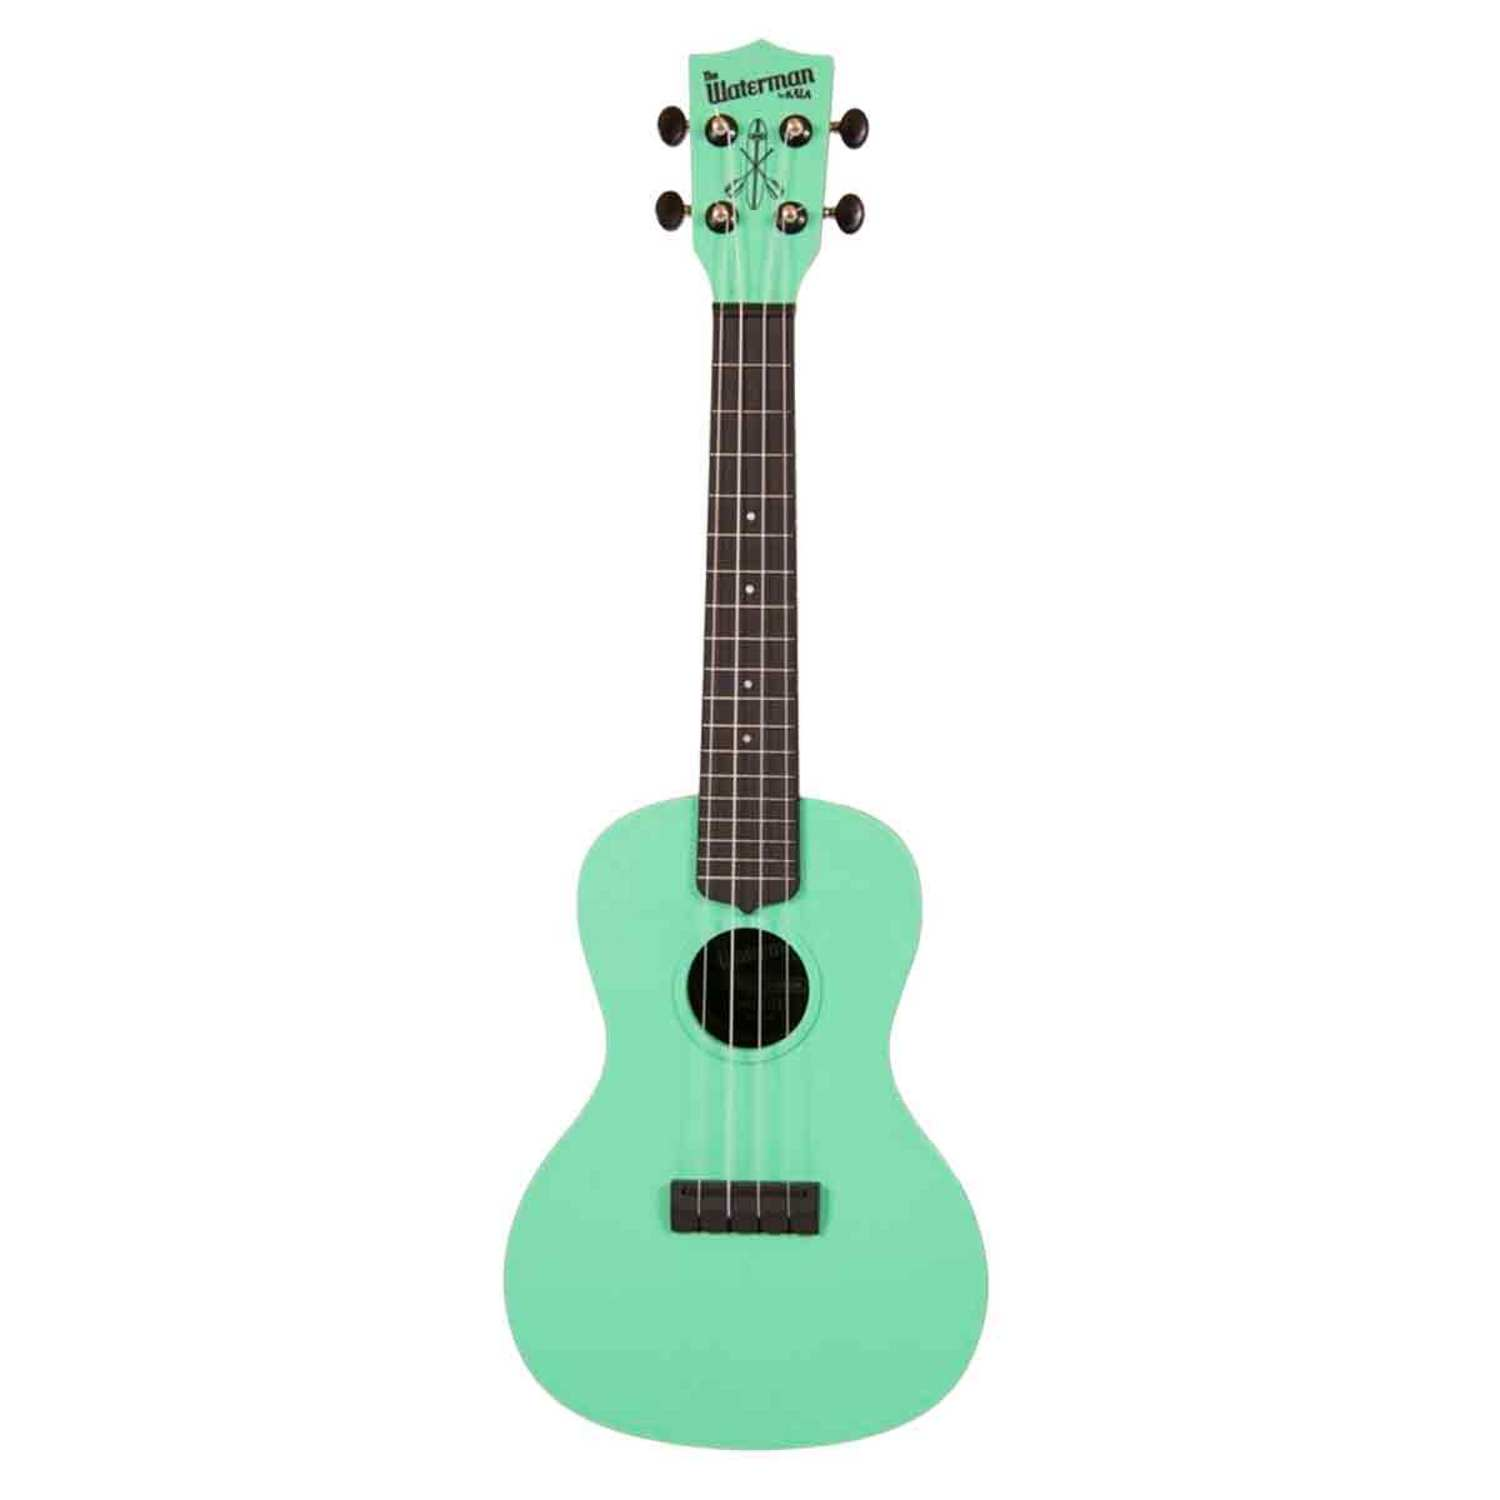 concert waterman green ukulele by kala brand boundary waters catalog. Black Bedroom Furniture Sets. Home Design Ideas